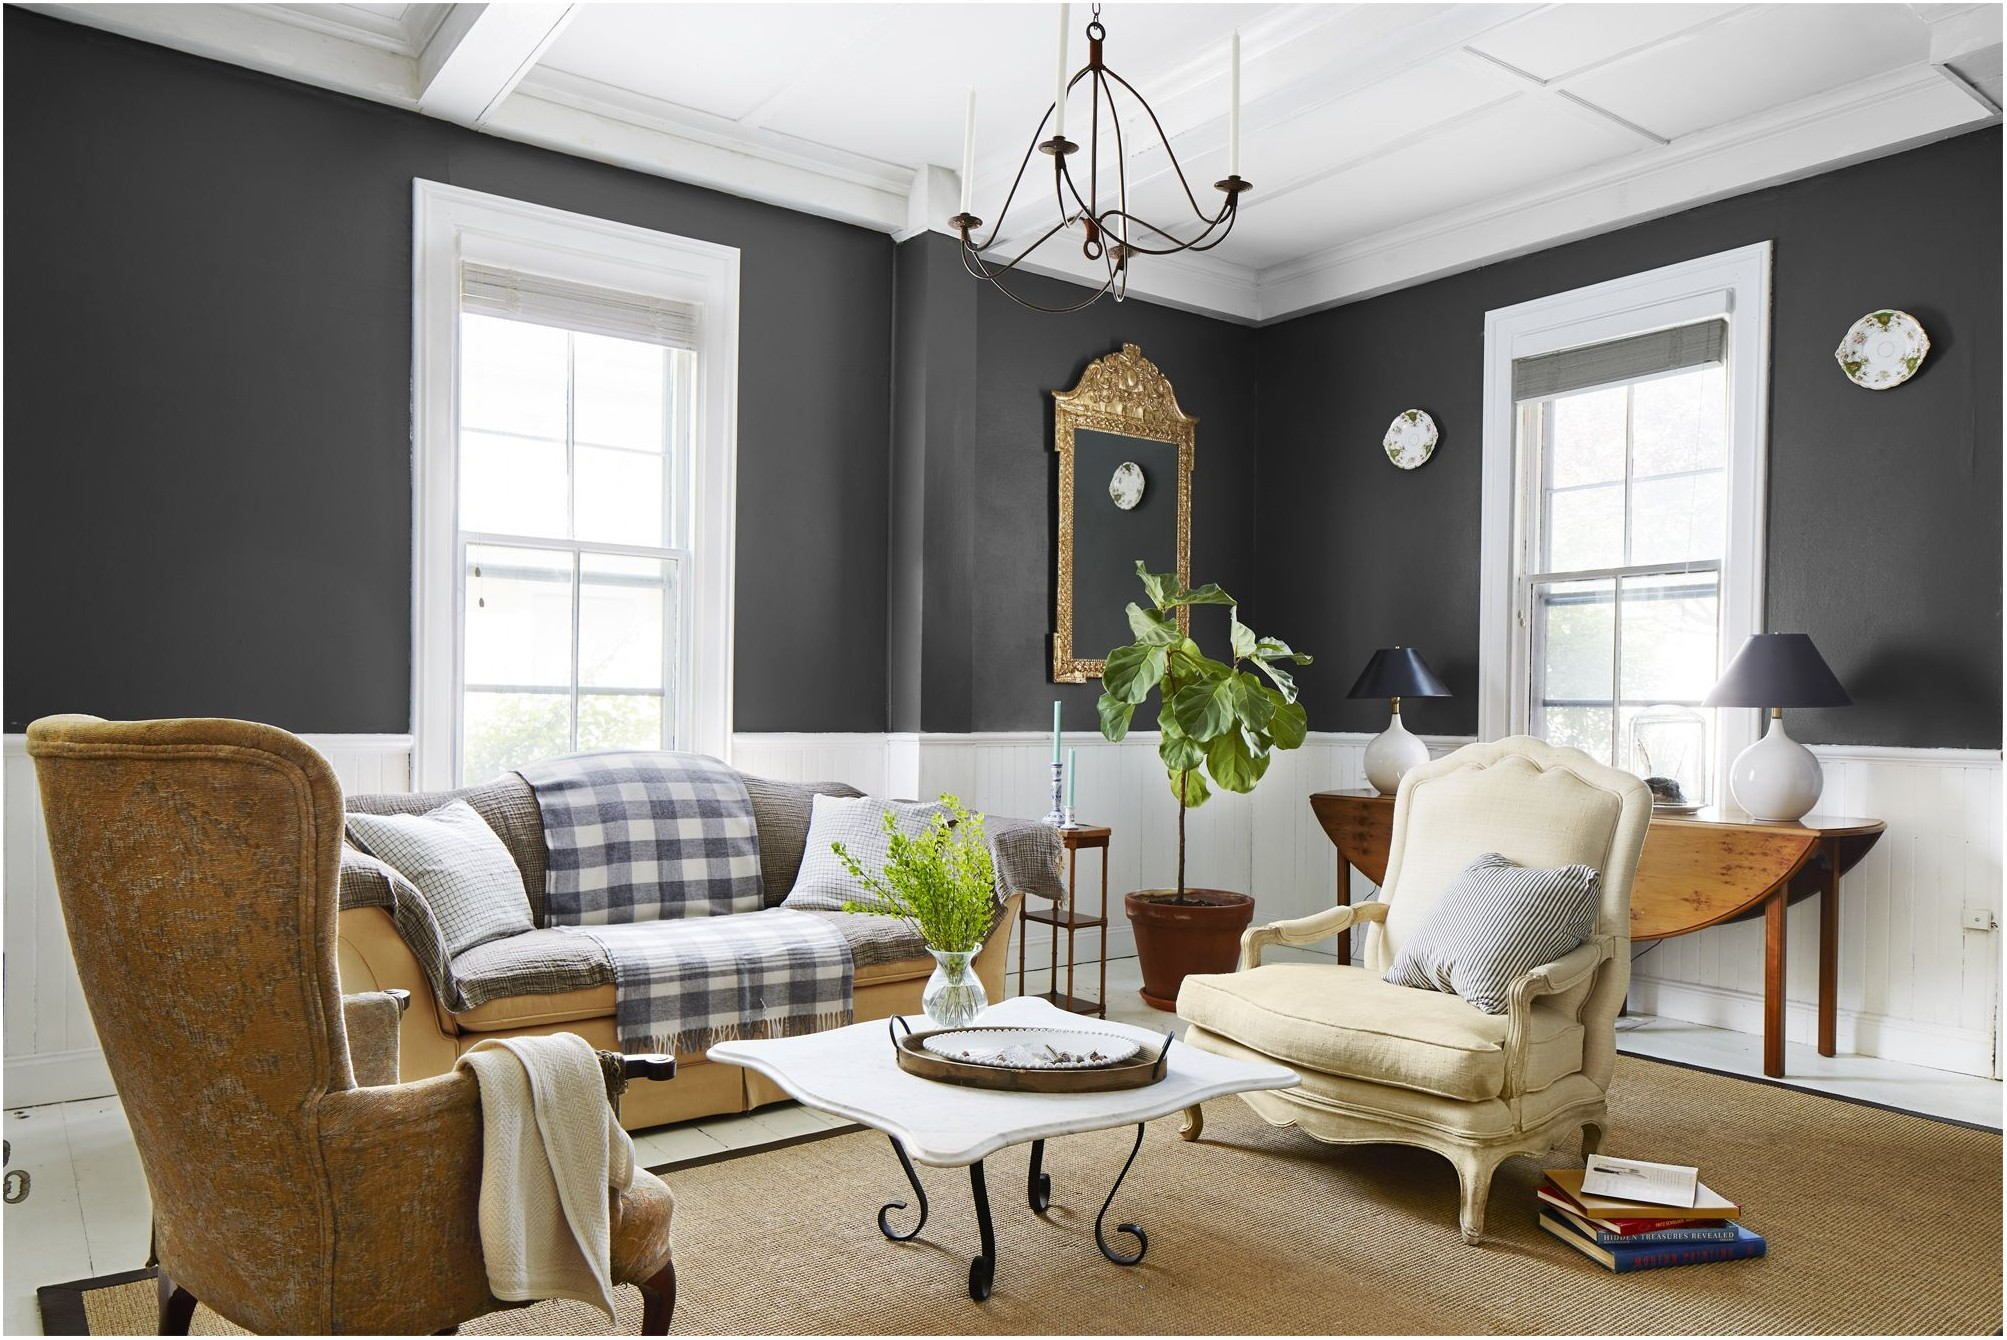 Best Paint Finish For Living Room Walls With Images Home Renovation Living Room Remodel Best Interior Paint